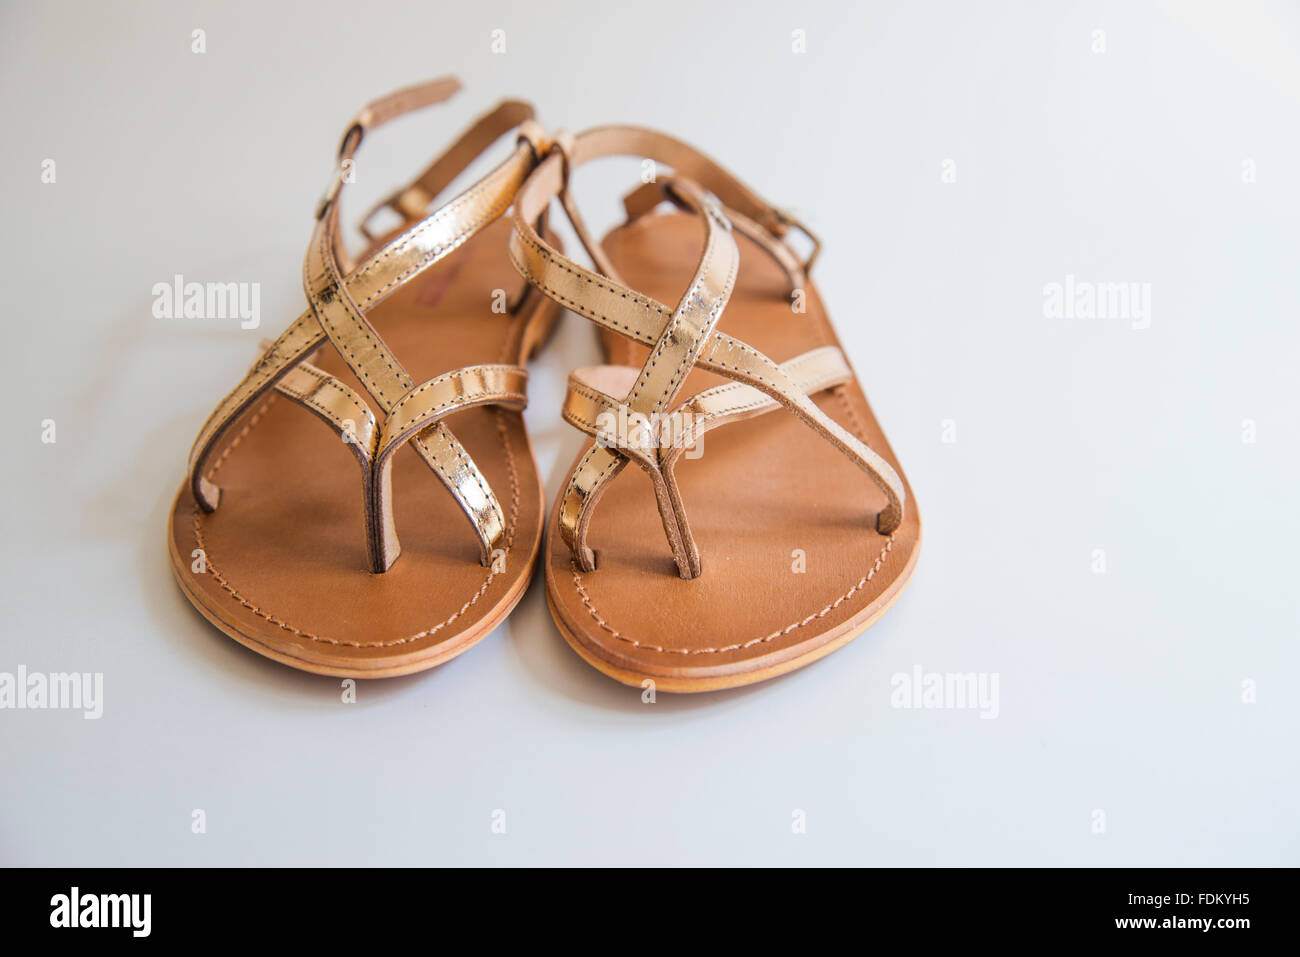 Pair of golden sandals. - Stock Image